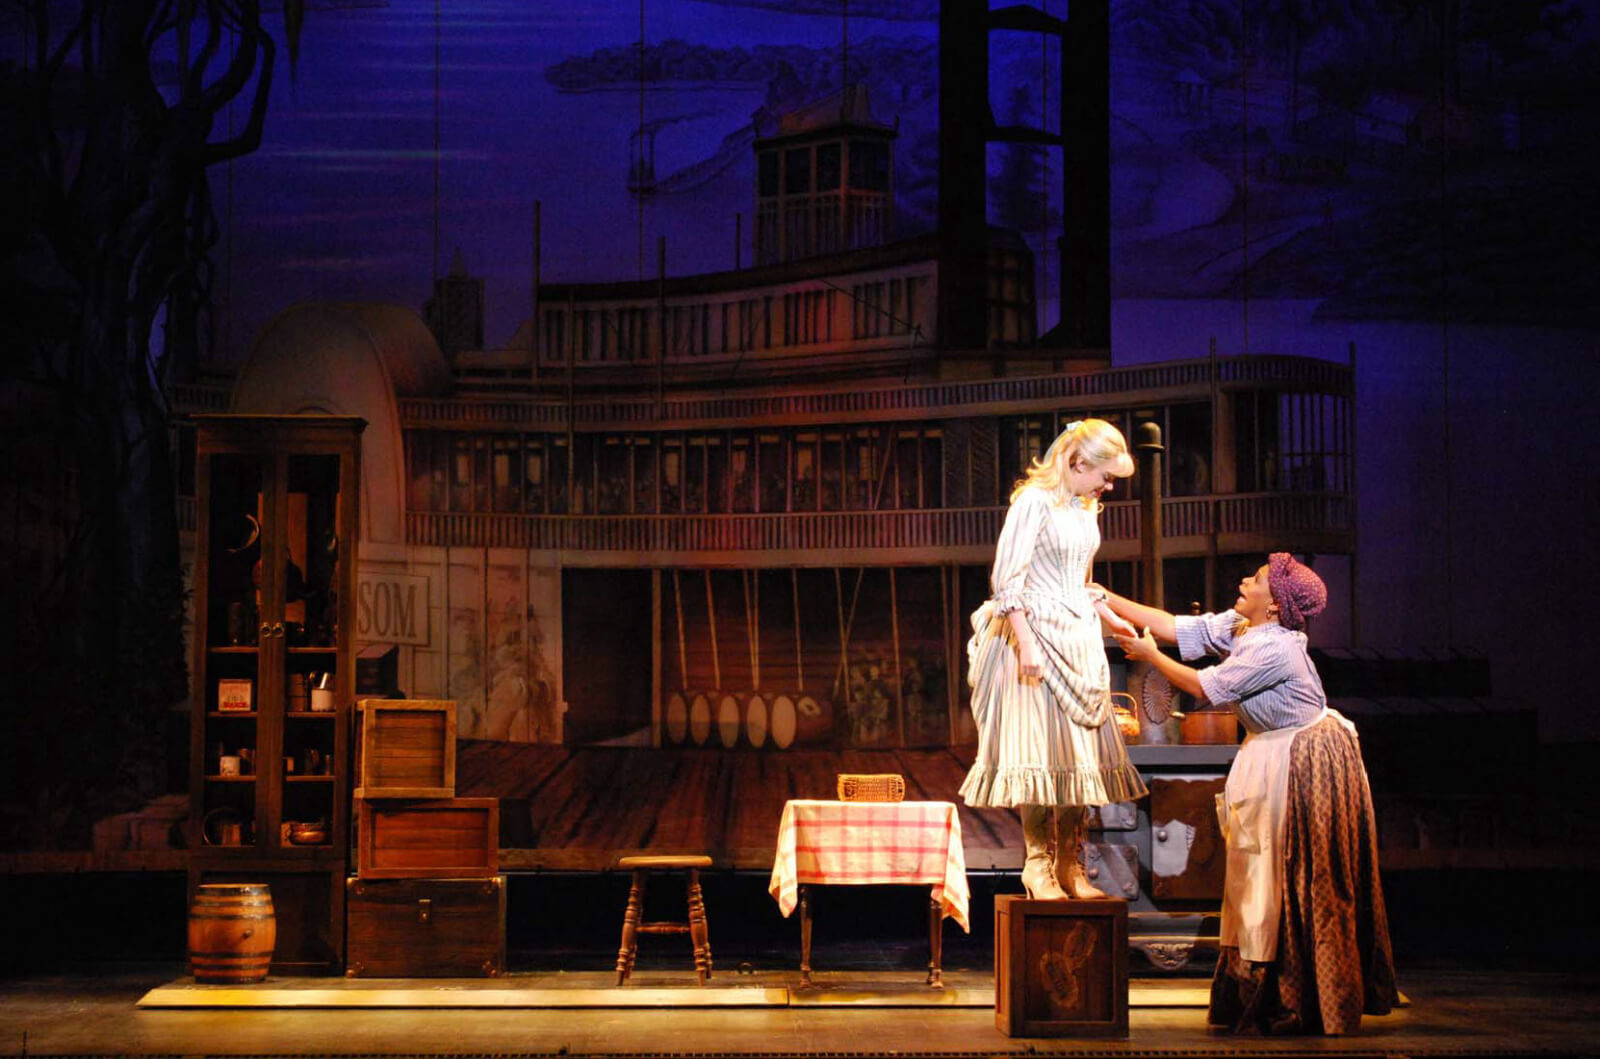 Kaley Ann Vorhees as Magnolia and Bryonha Marie Parham as Queenie in a scene from ShowBoat. Queenie fixes Magnolias hem in Prince of Broadway.